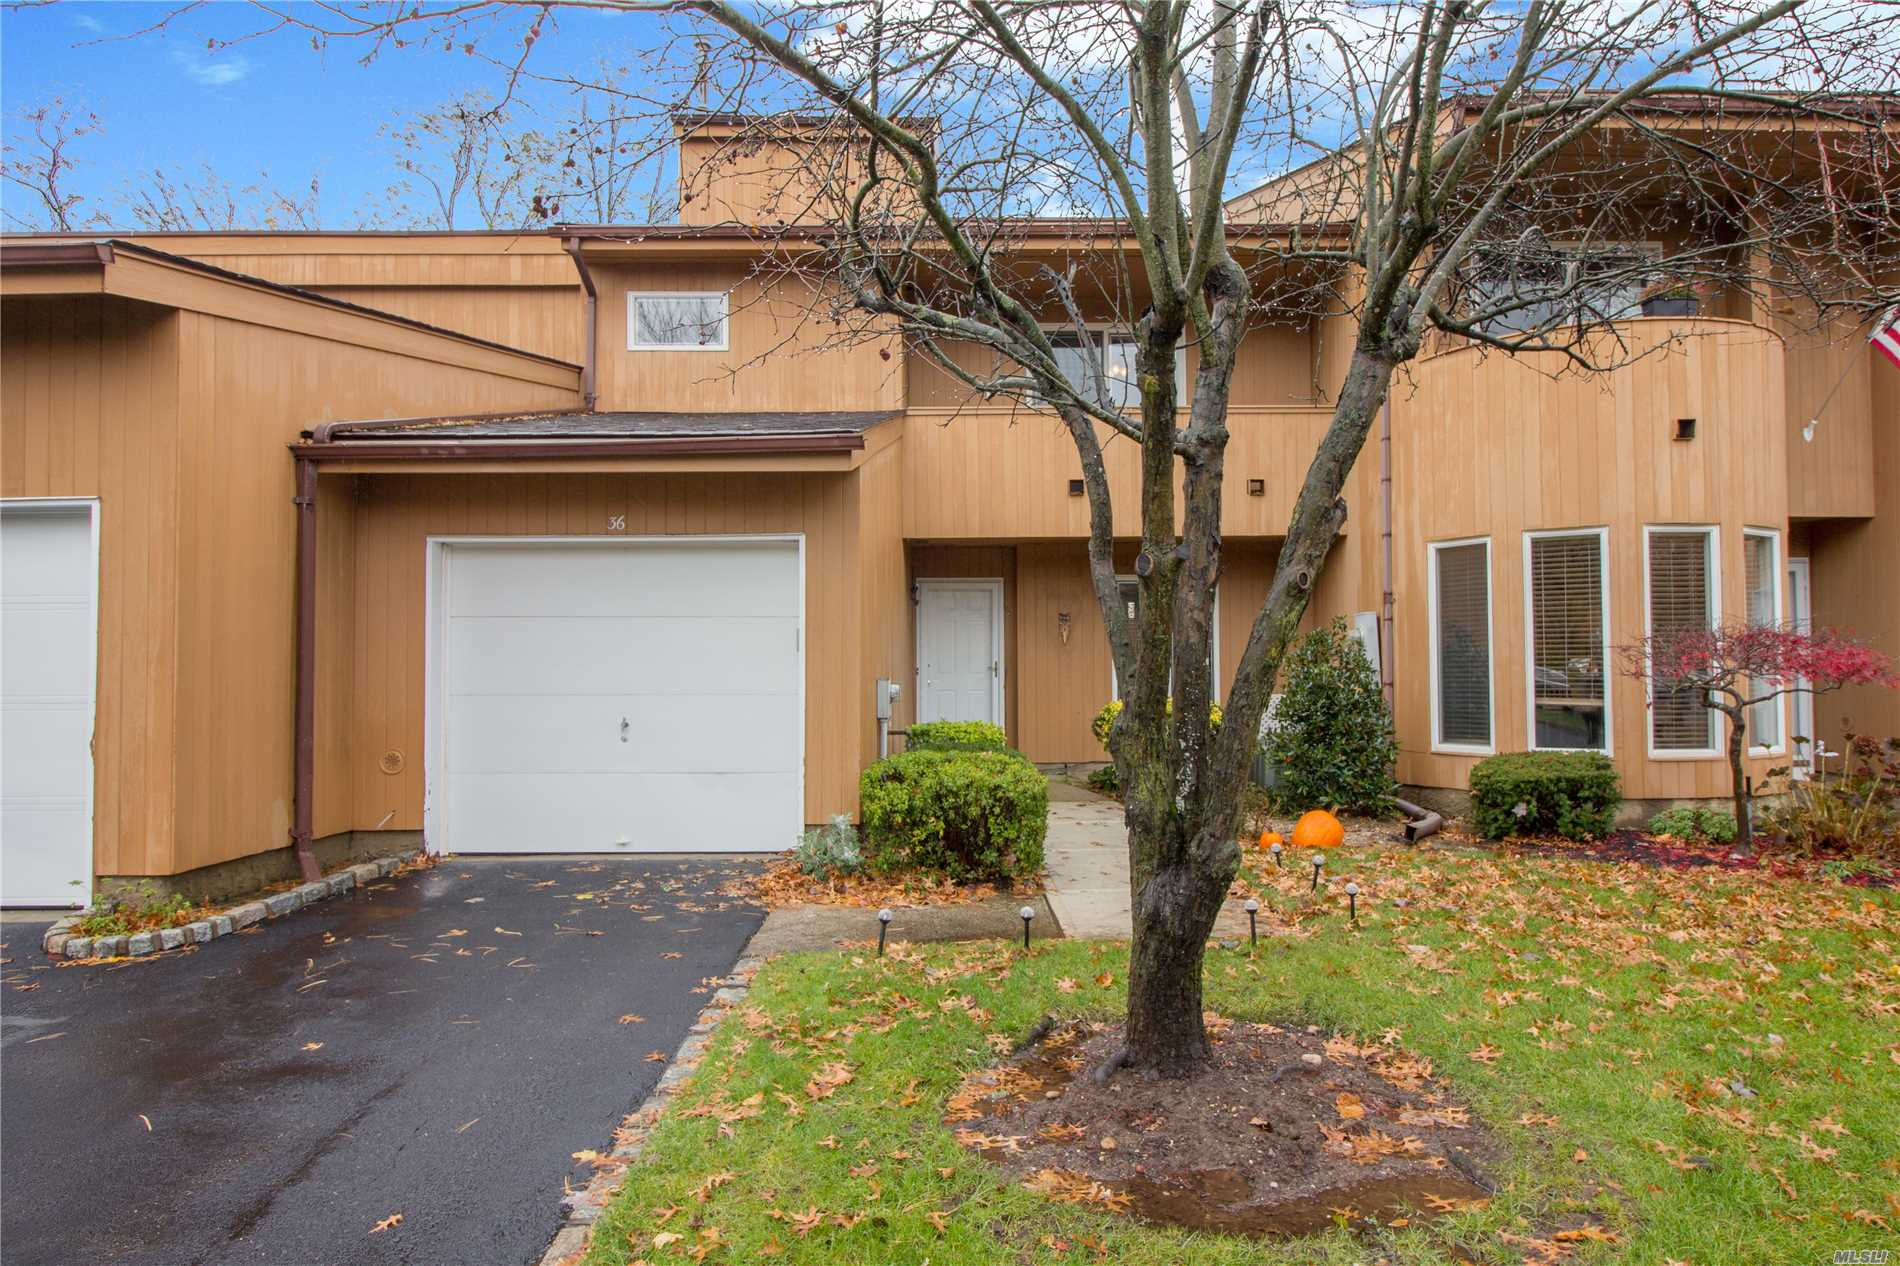 Property for sale at 36 Kristin Ln, Hauppauge,  NY 11788